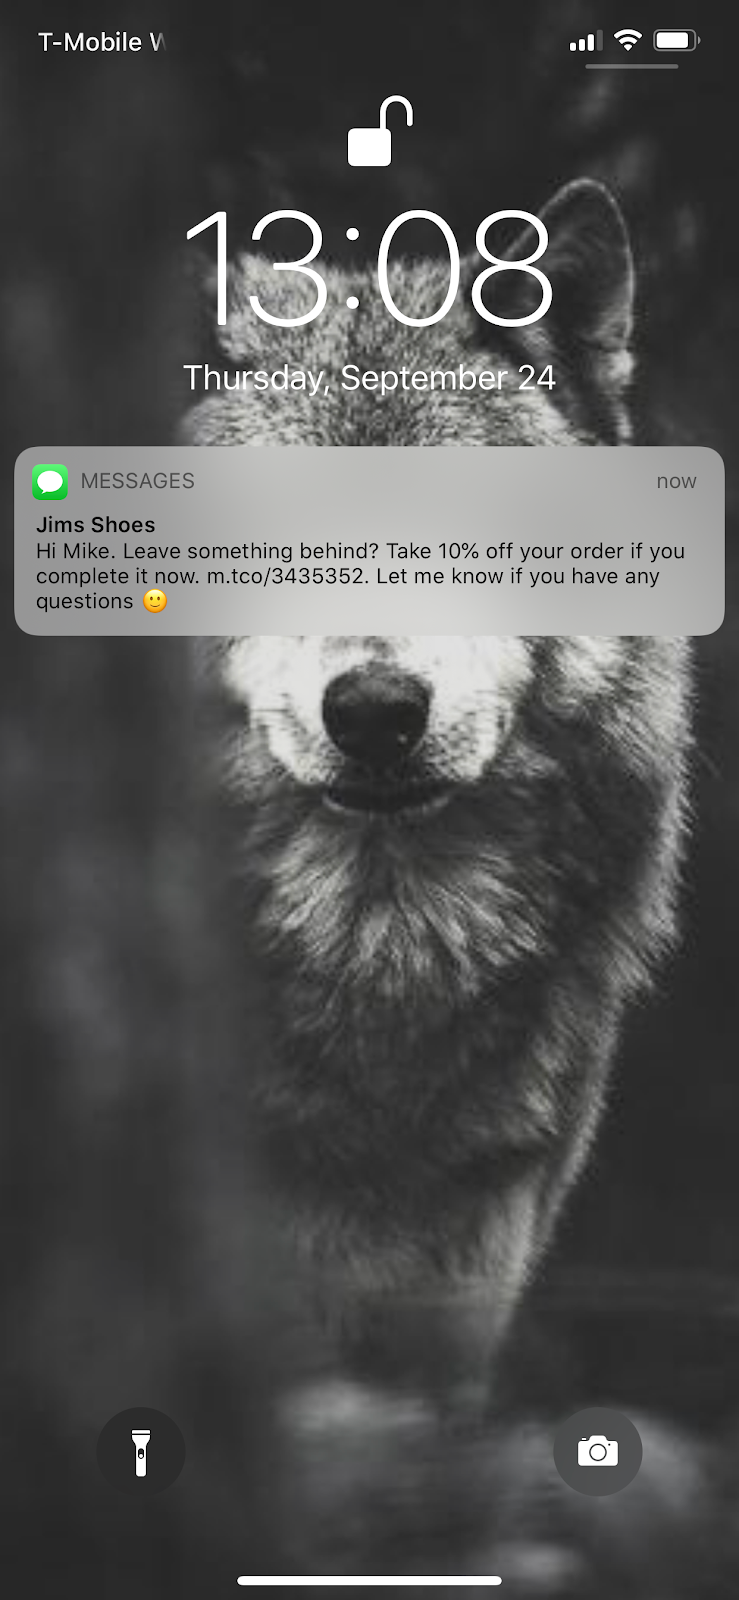 abandoned cart sms example from lock screen